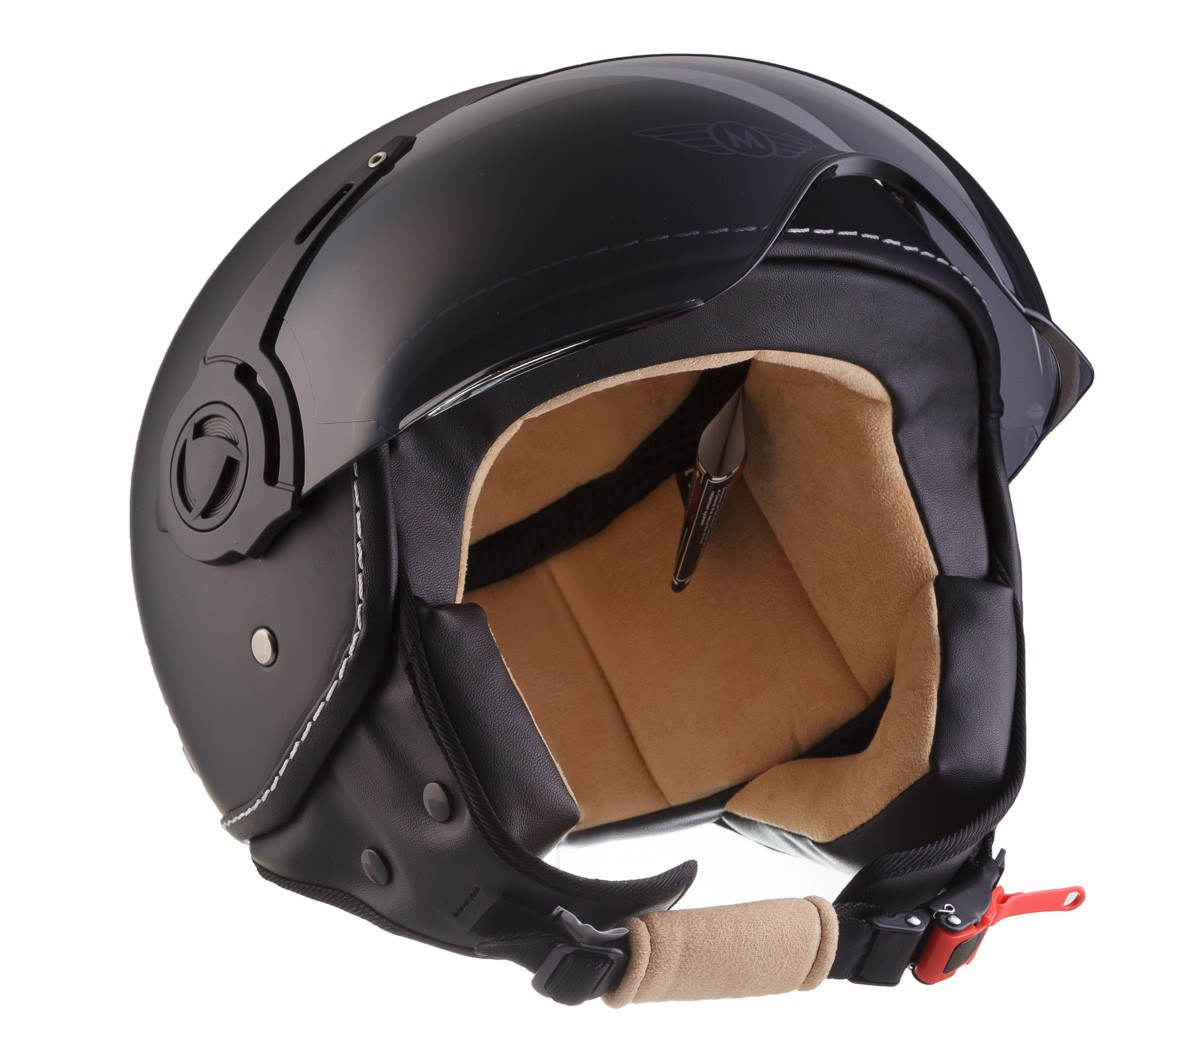 moto h44 matt b jet helm motorrad helm roller helm retro. Black Bedroom Furniture Sets. Home Design Ideas